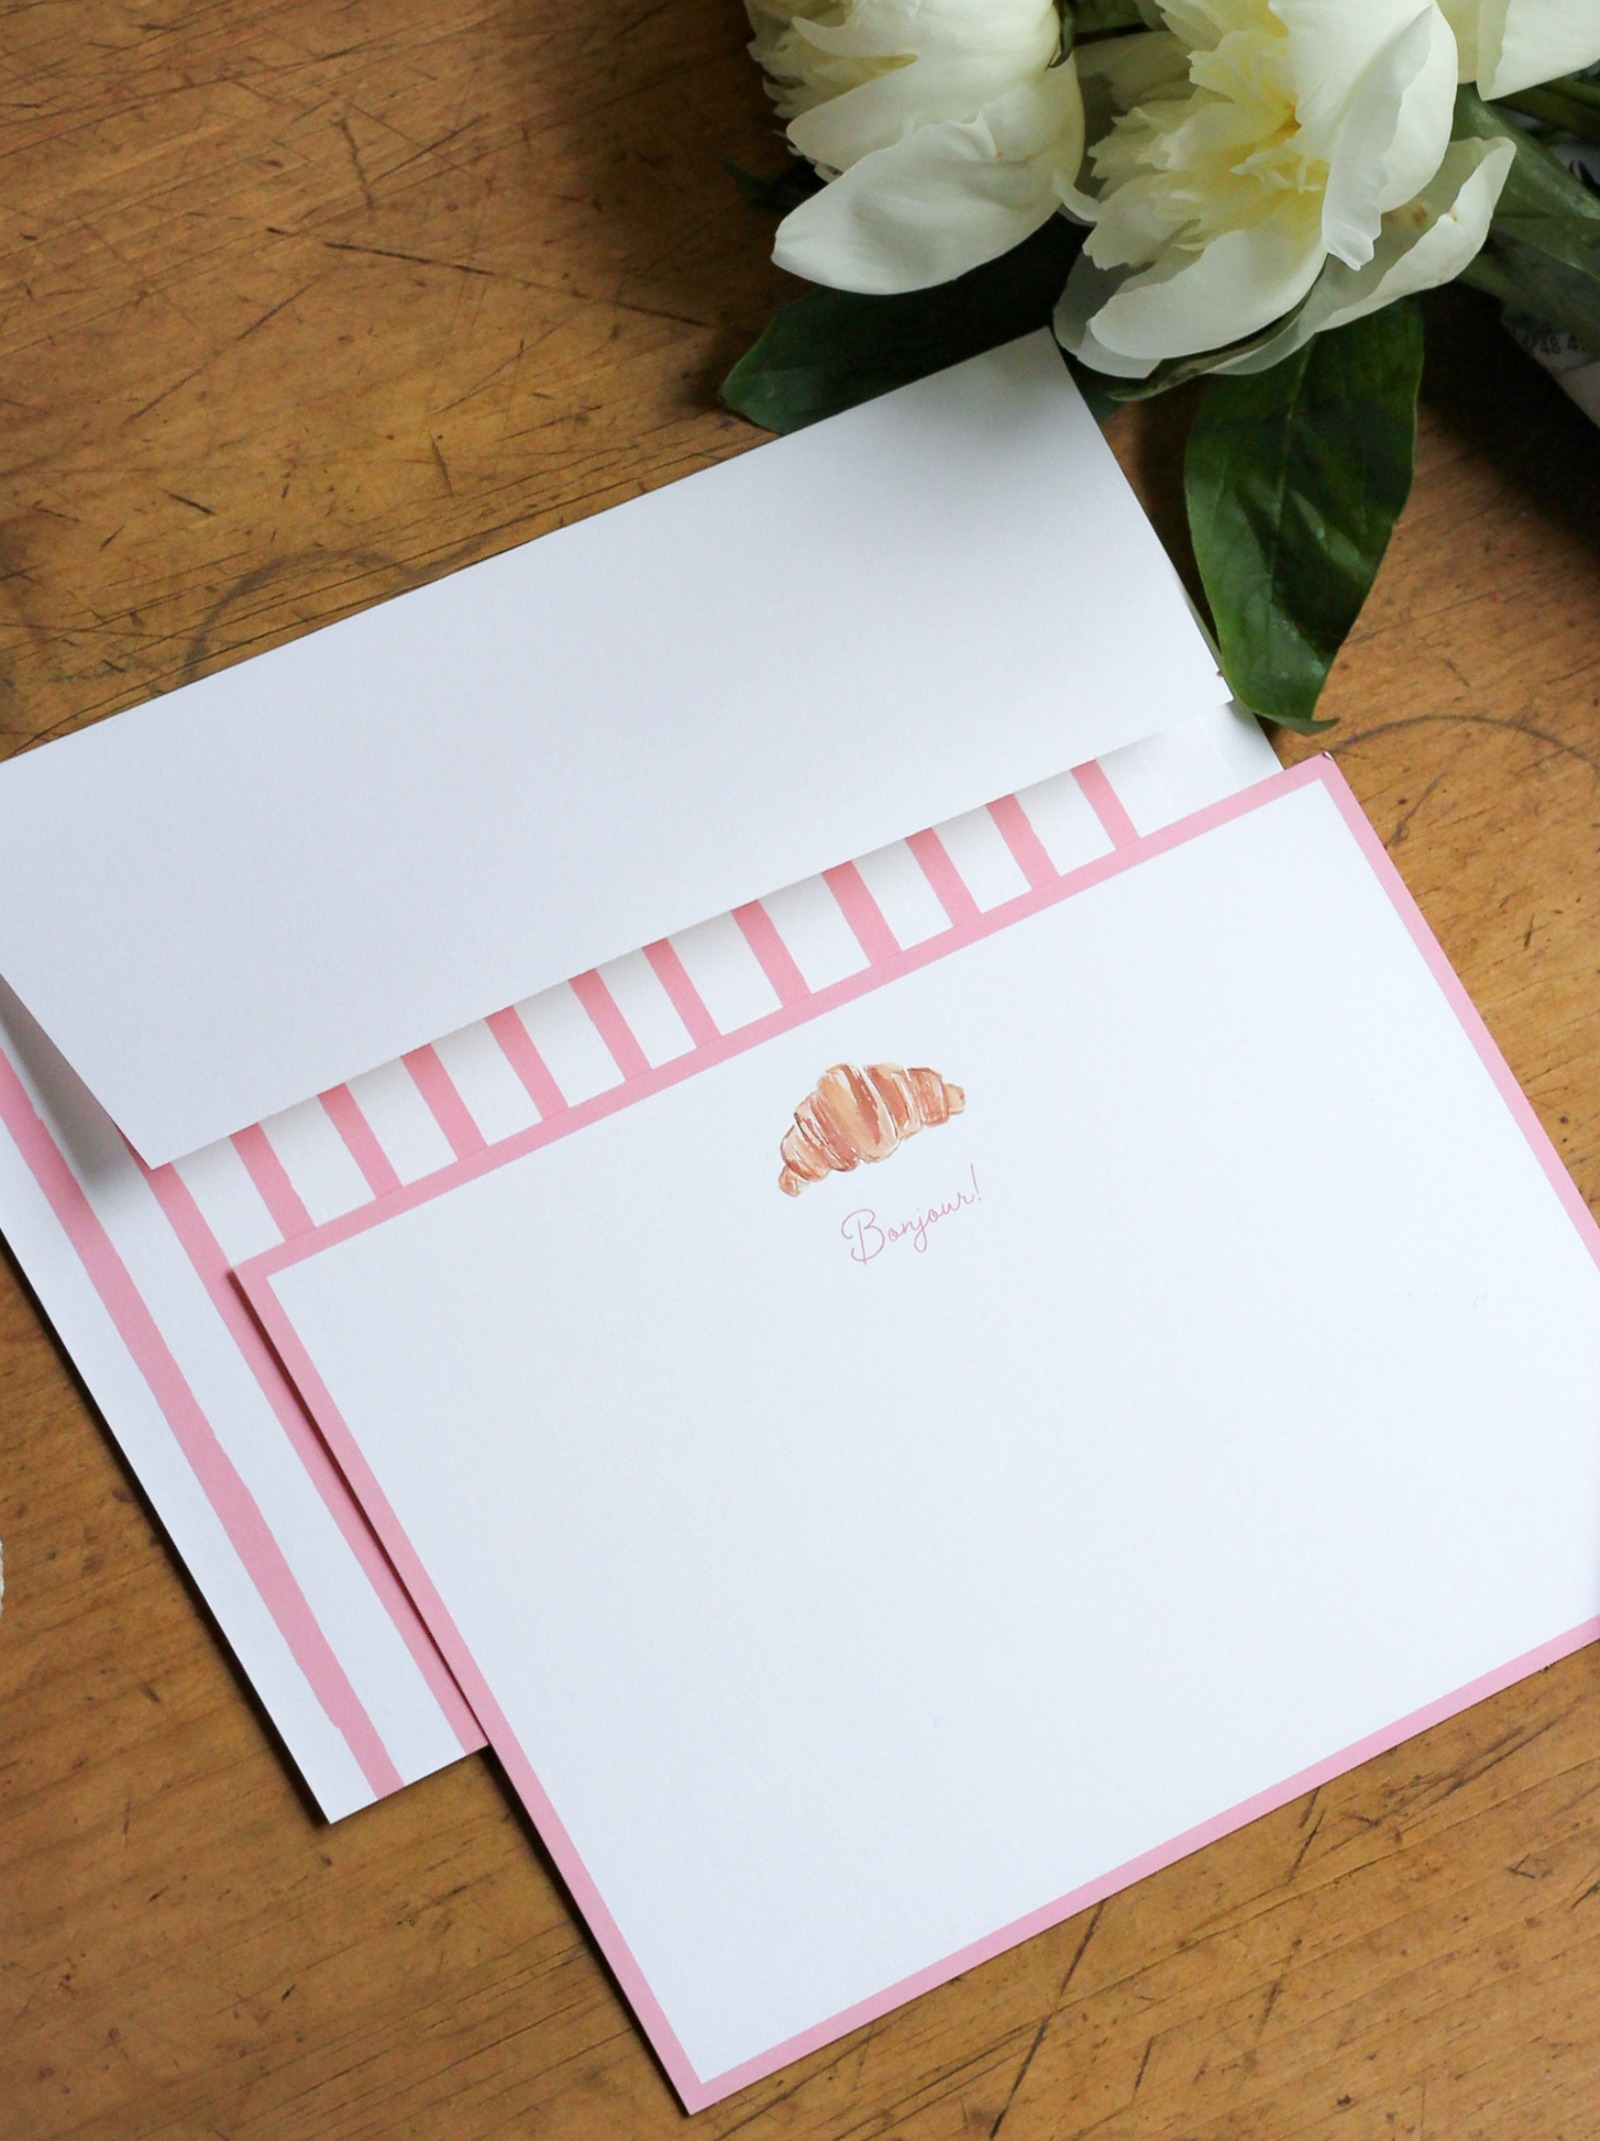 wit & whimsy Croissant Custom Stationery